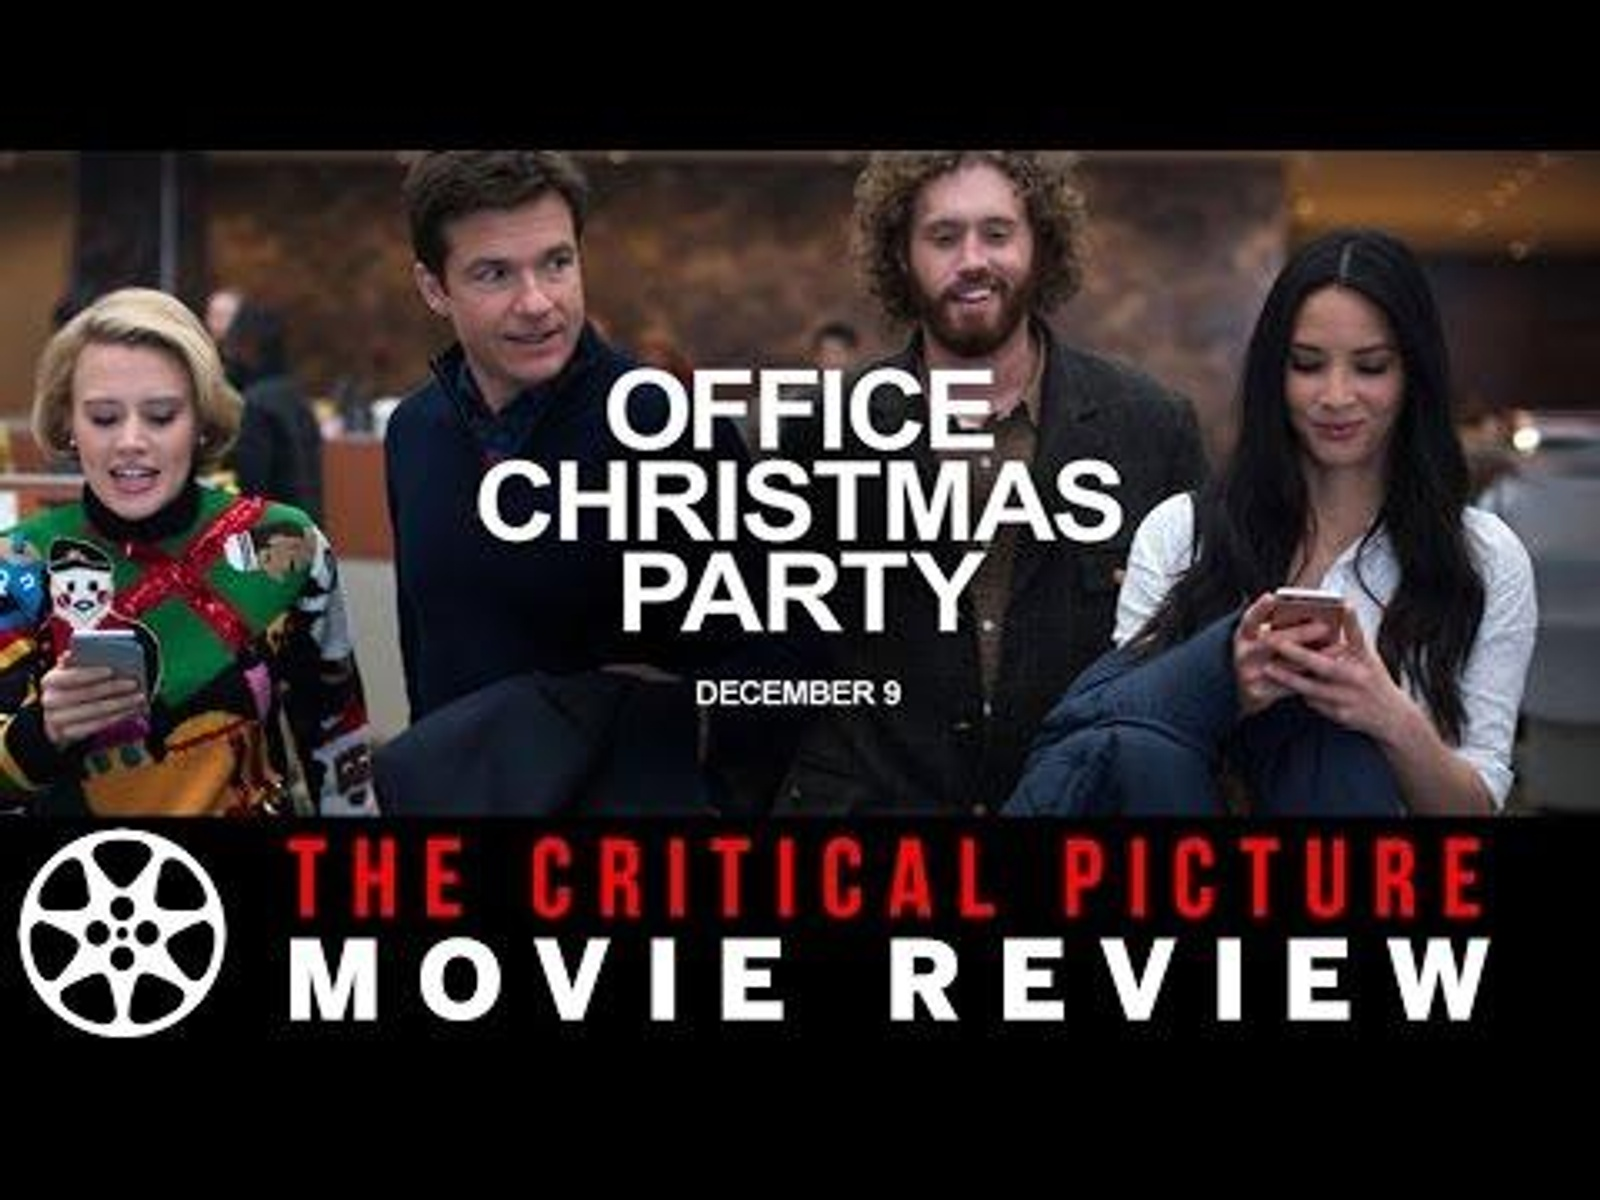 Office Christmas Party movie review | Chris Shelton on Patreon